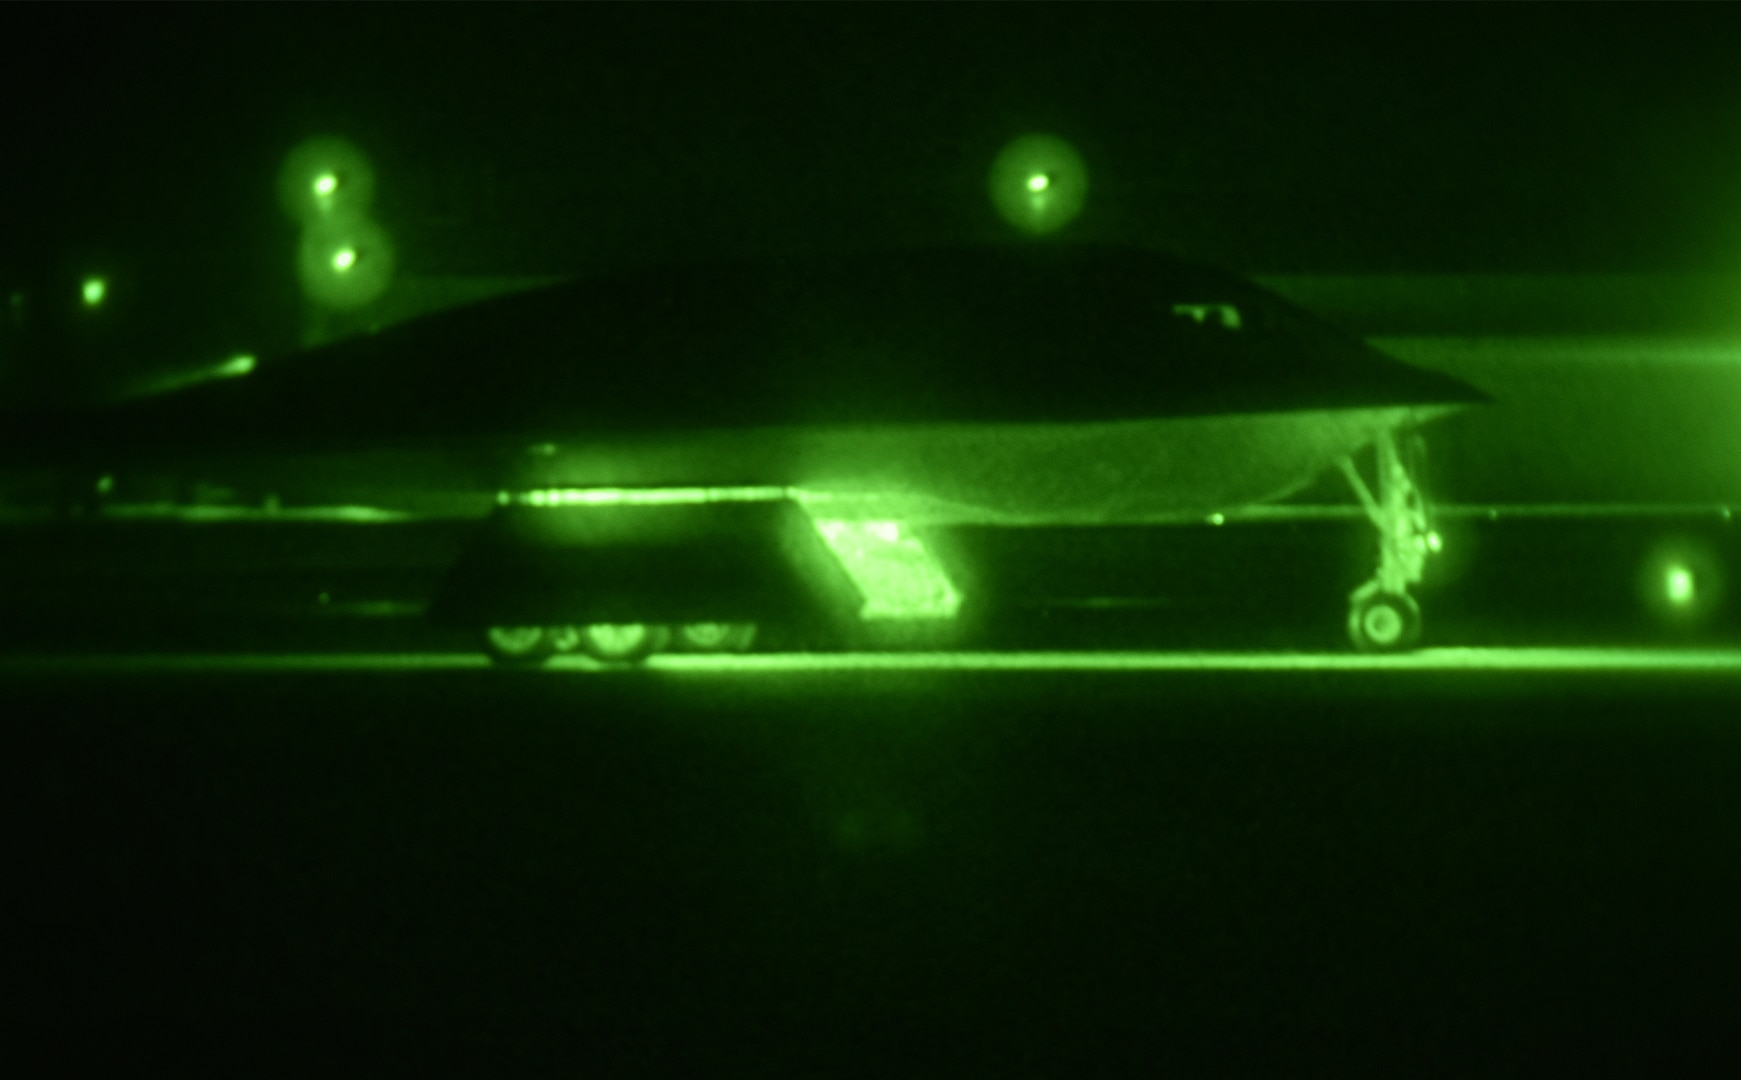 A B-2 Spirit prepares to take off from Whiteman Air Force Base, Mo., Oct. 28, 2017, to conduct a long-range mission to the U.S. Pacific Command area of responsibility. These missions validate our always-ready global strike capability and are a visible demonstration of commitment to our allies and enhancing regional security.